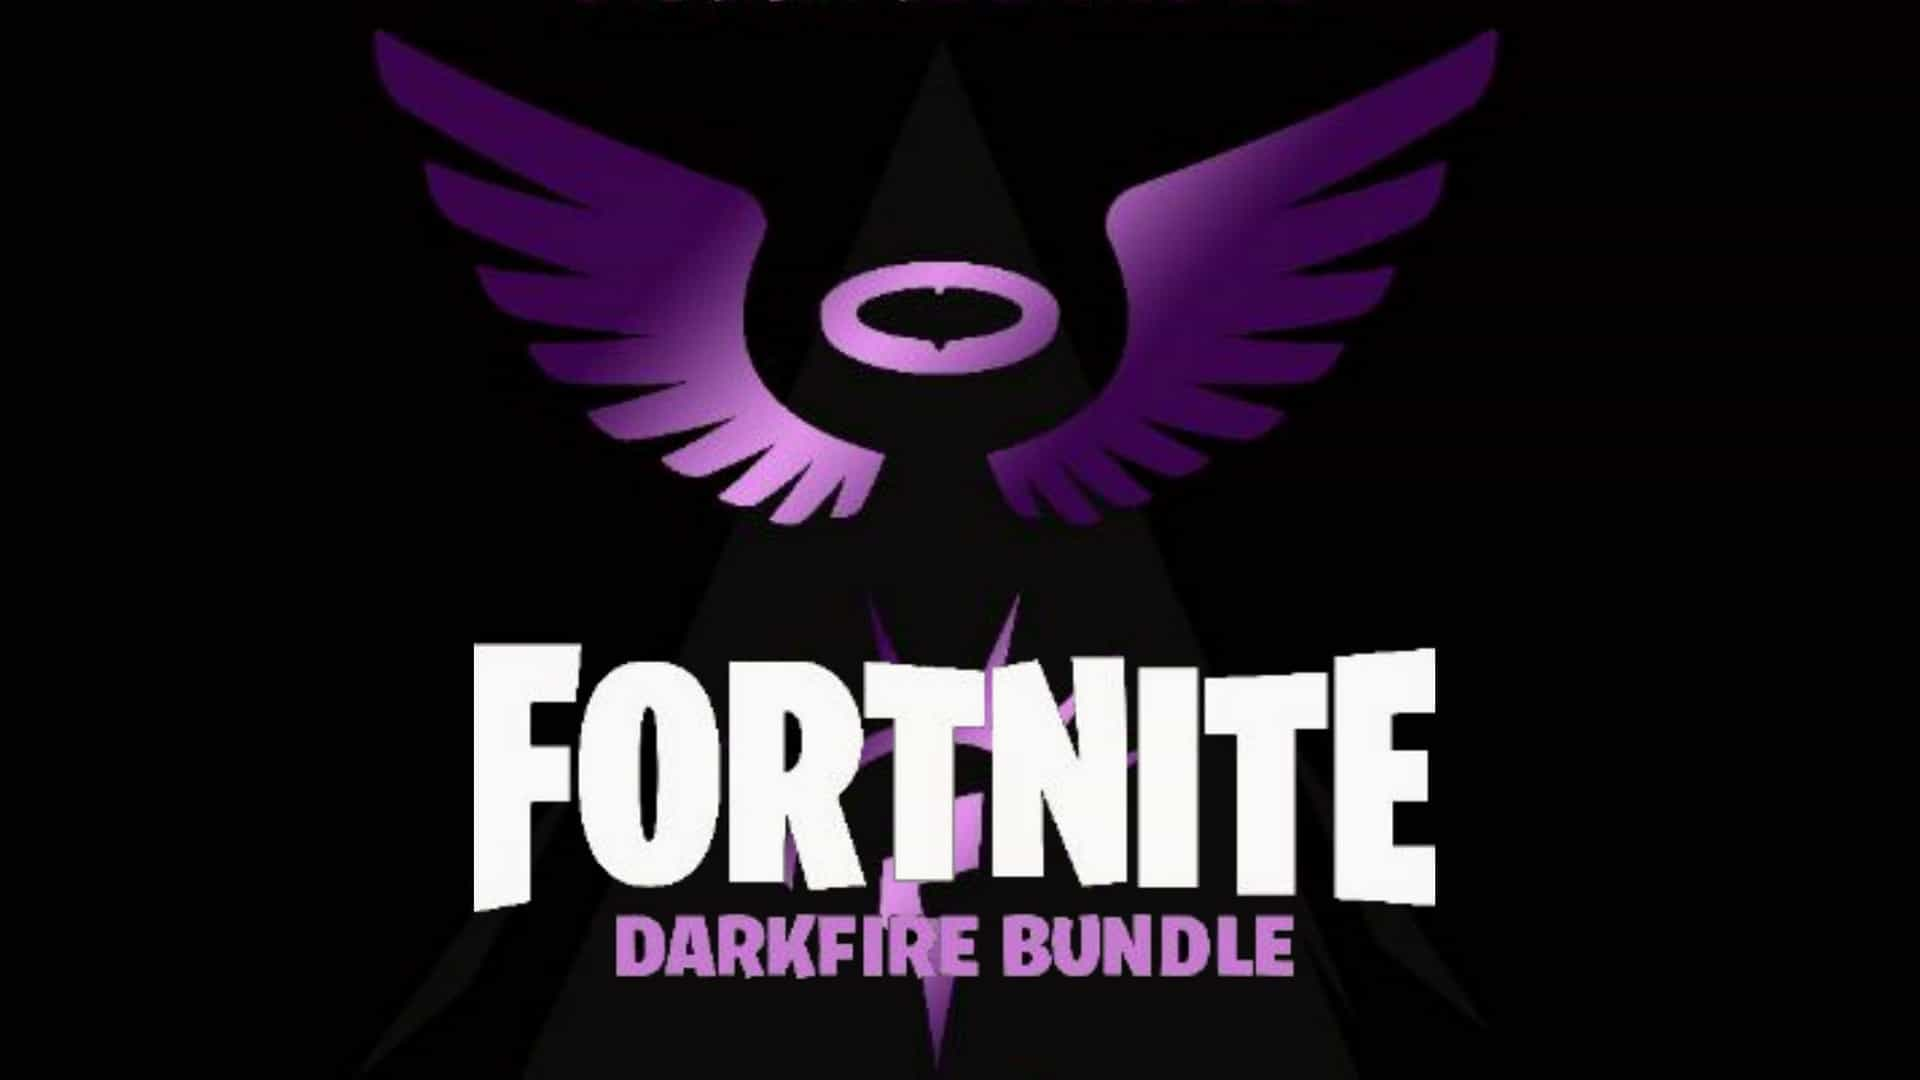 Warner Bros. Interactive Entertainment and Epic Games to Launch Fortnite: Darkfire Bundle